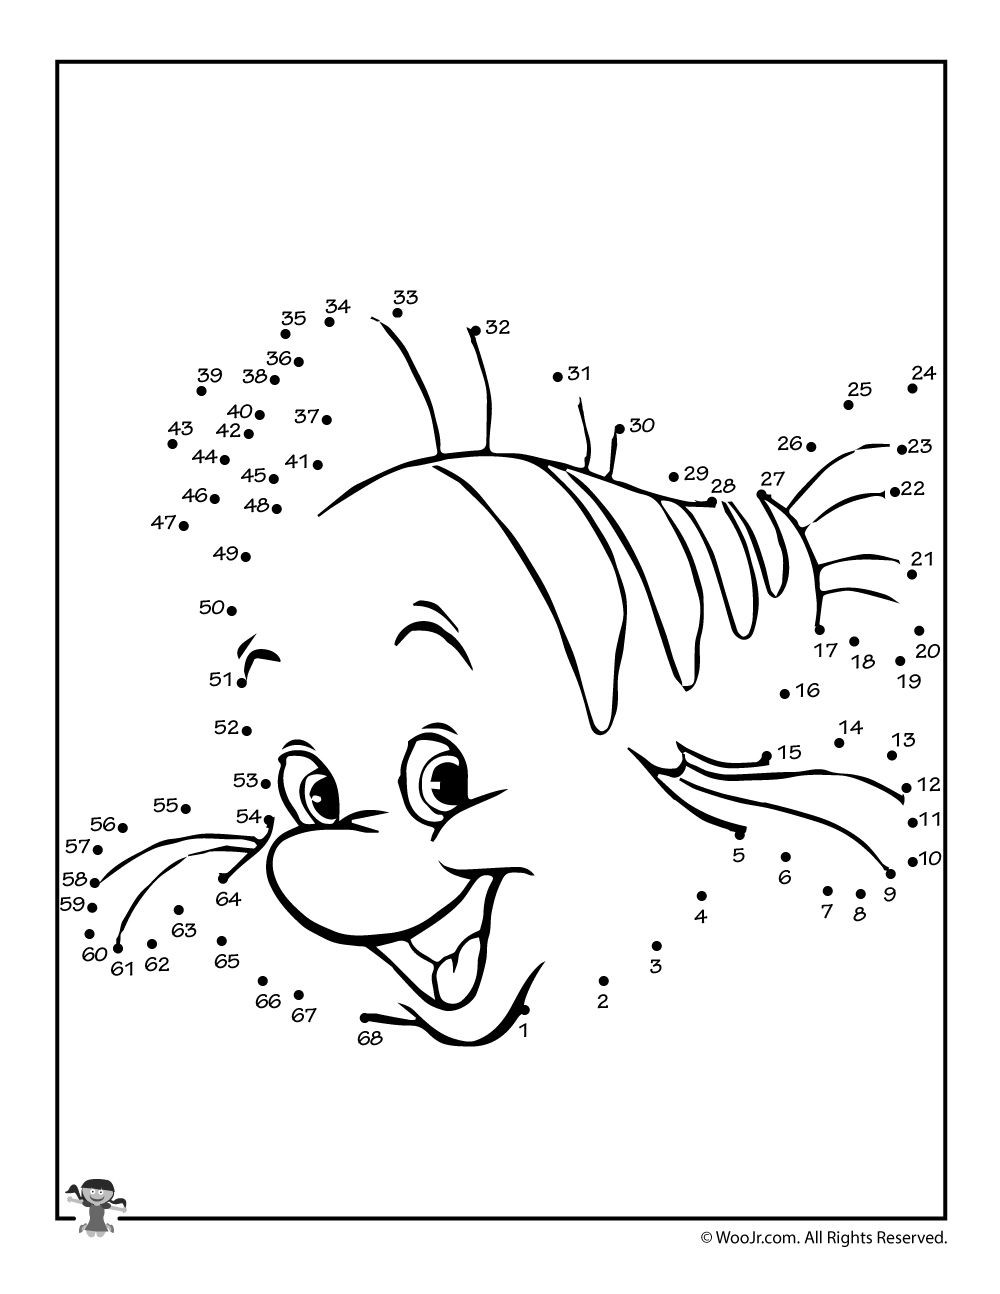 Abc Connect the Dots Printable Disney Dot to Dots Printable Activity Pages